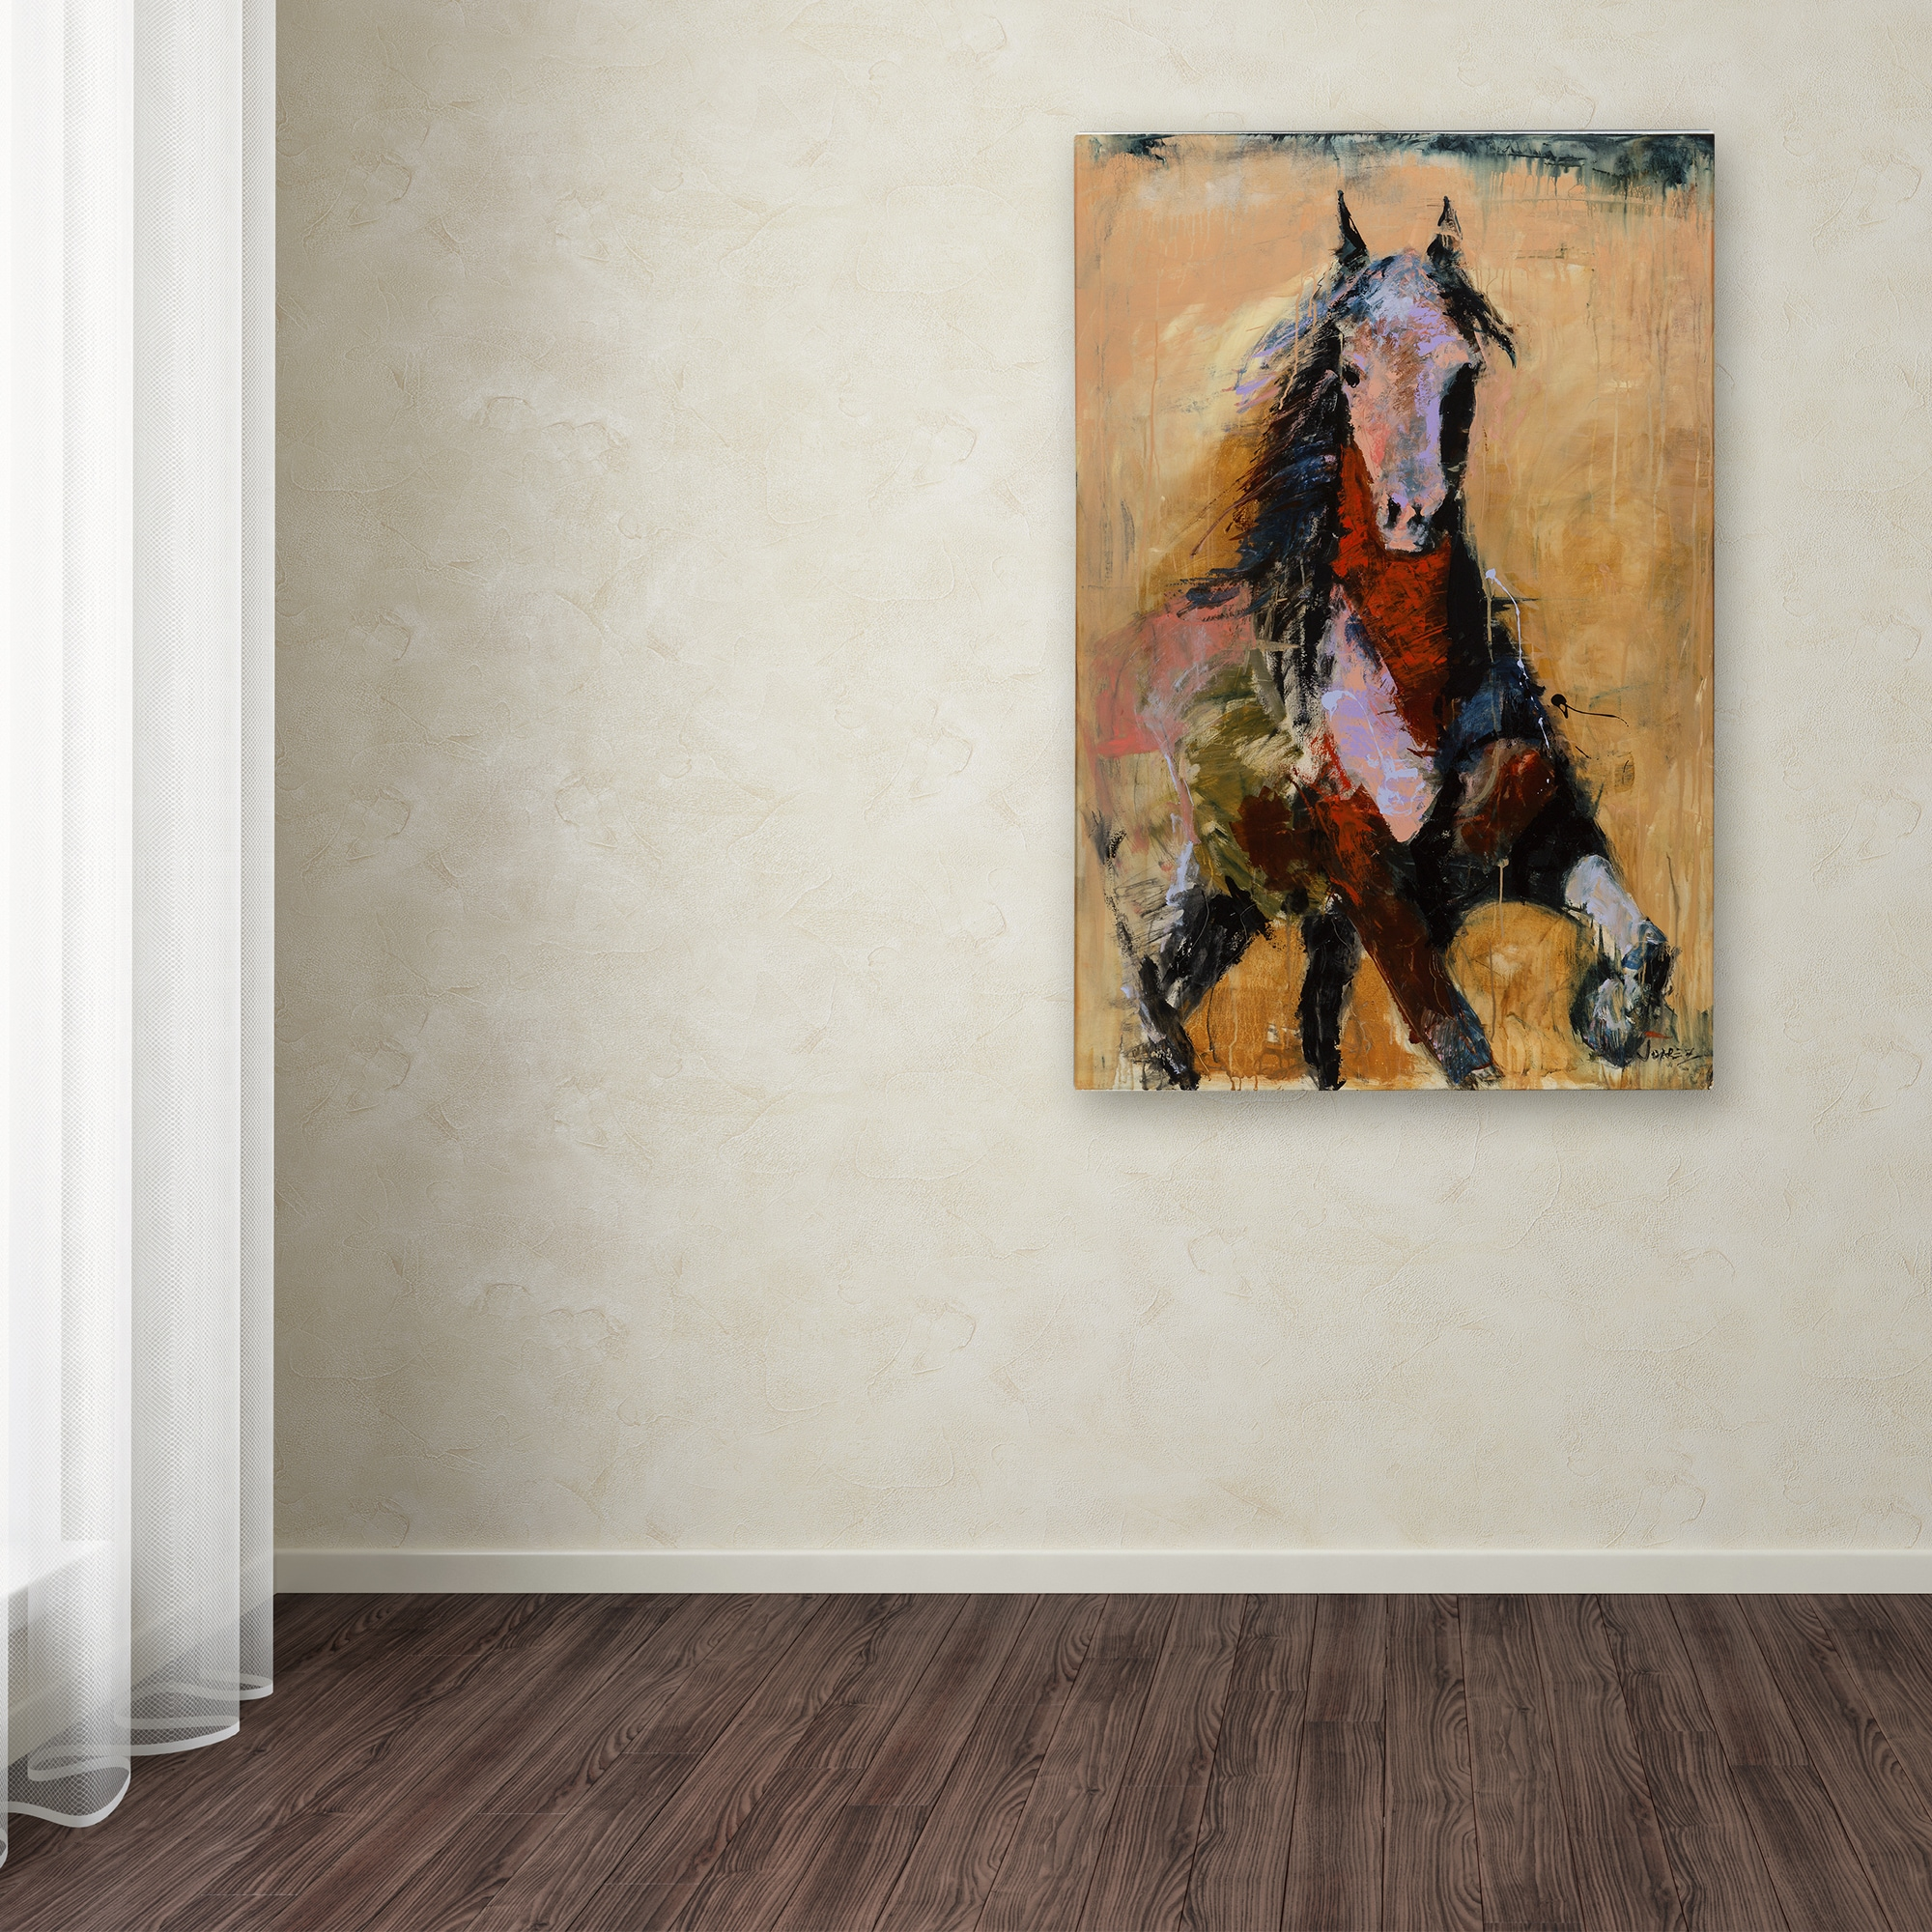 Joarez Golden Horse Canvas Art Overstock 12186627 16 X 24